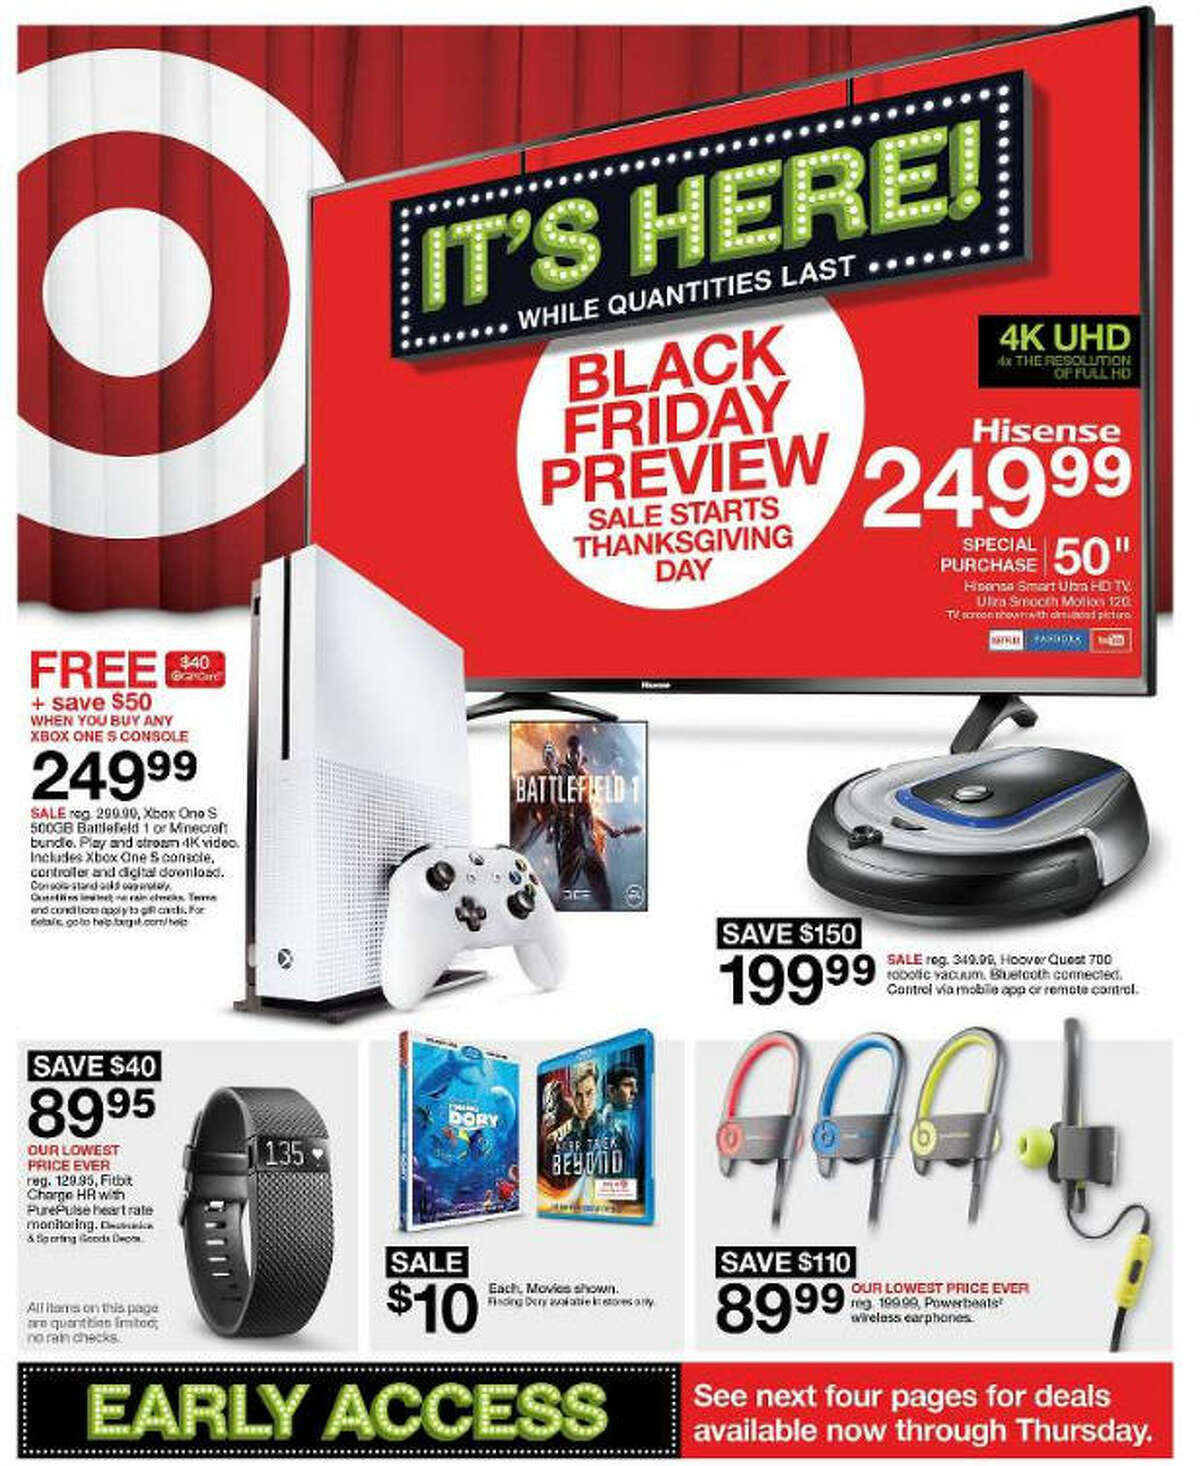 """Target has released its 40-page Black Friday 2016 ad circular. """"Early Access Sale"""" prices and promotions are valid Nov. 9-10. """"10 Days of Deals"""" prices and promotions are valid Nov. 19-28. """"Black Friday Presale"""" and """"Doorbusters"""" prices and promotions valid Nov. 23-24. All prices and promotions are subject to change and availability, based on the retailer's determination."""